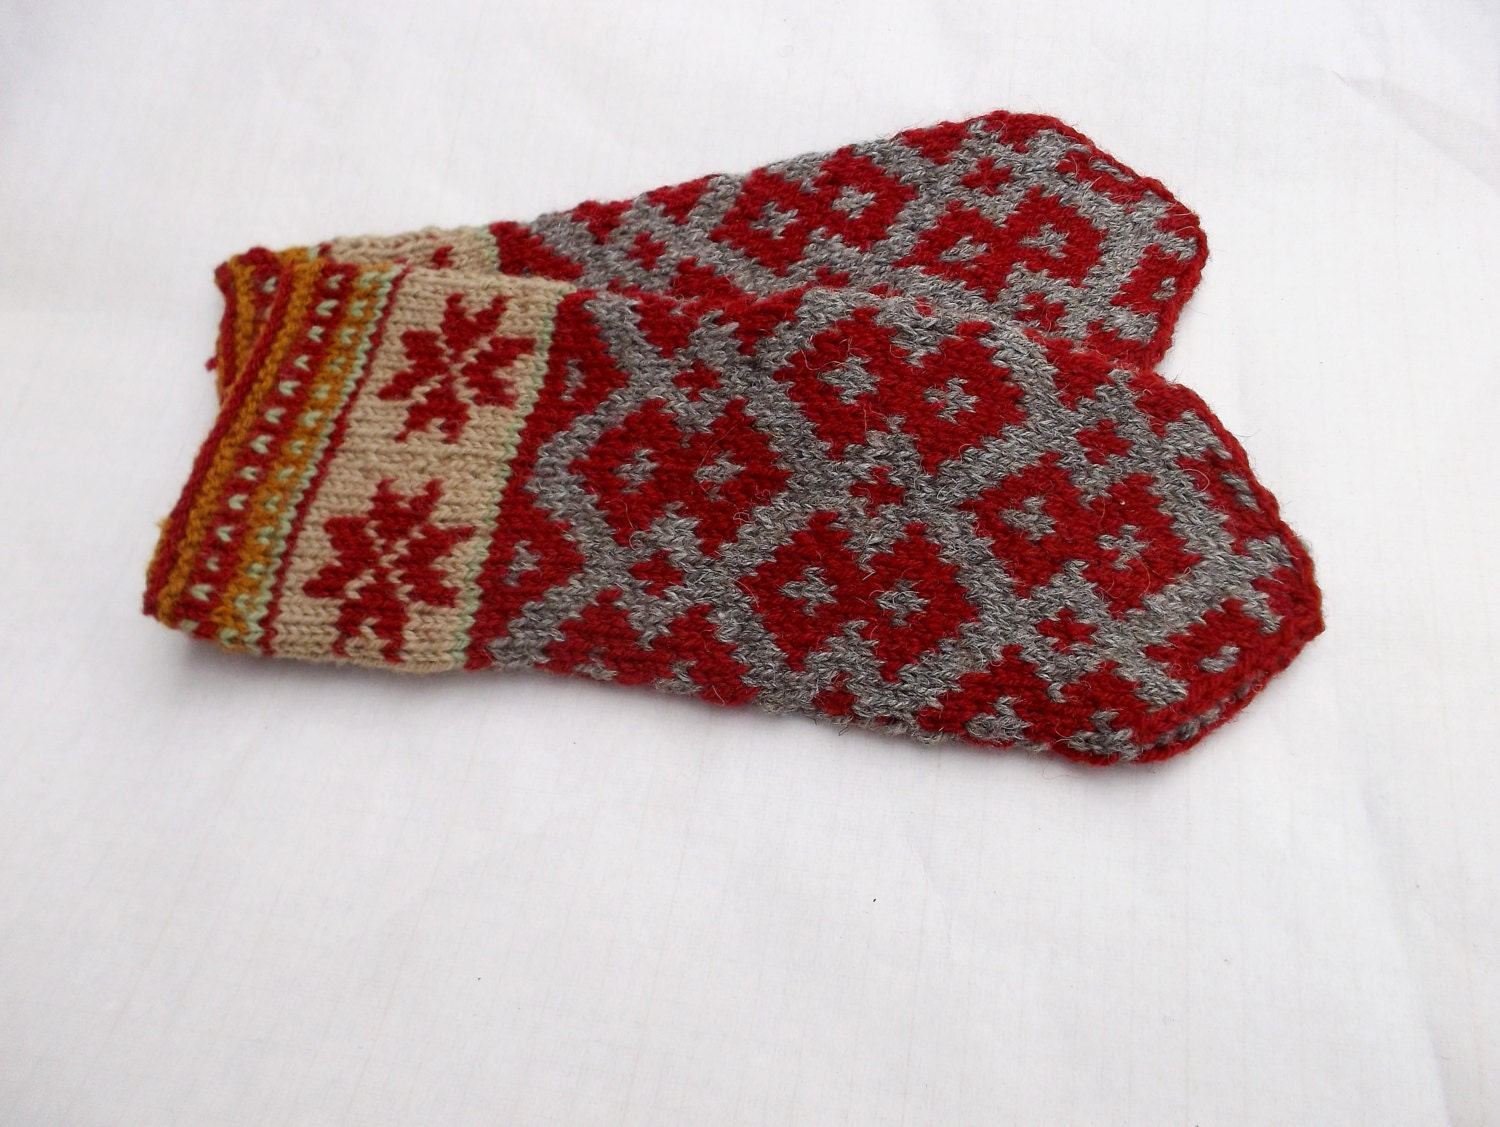 knitted wool gray red mittens hand knitted pattern mittens